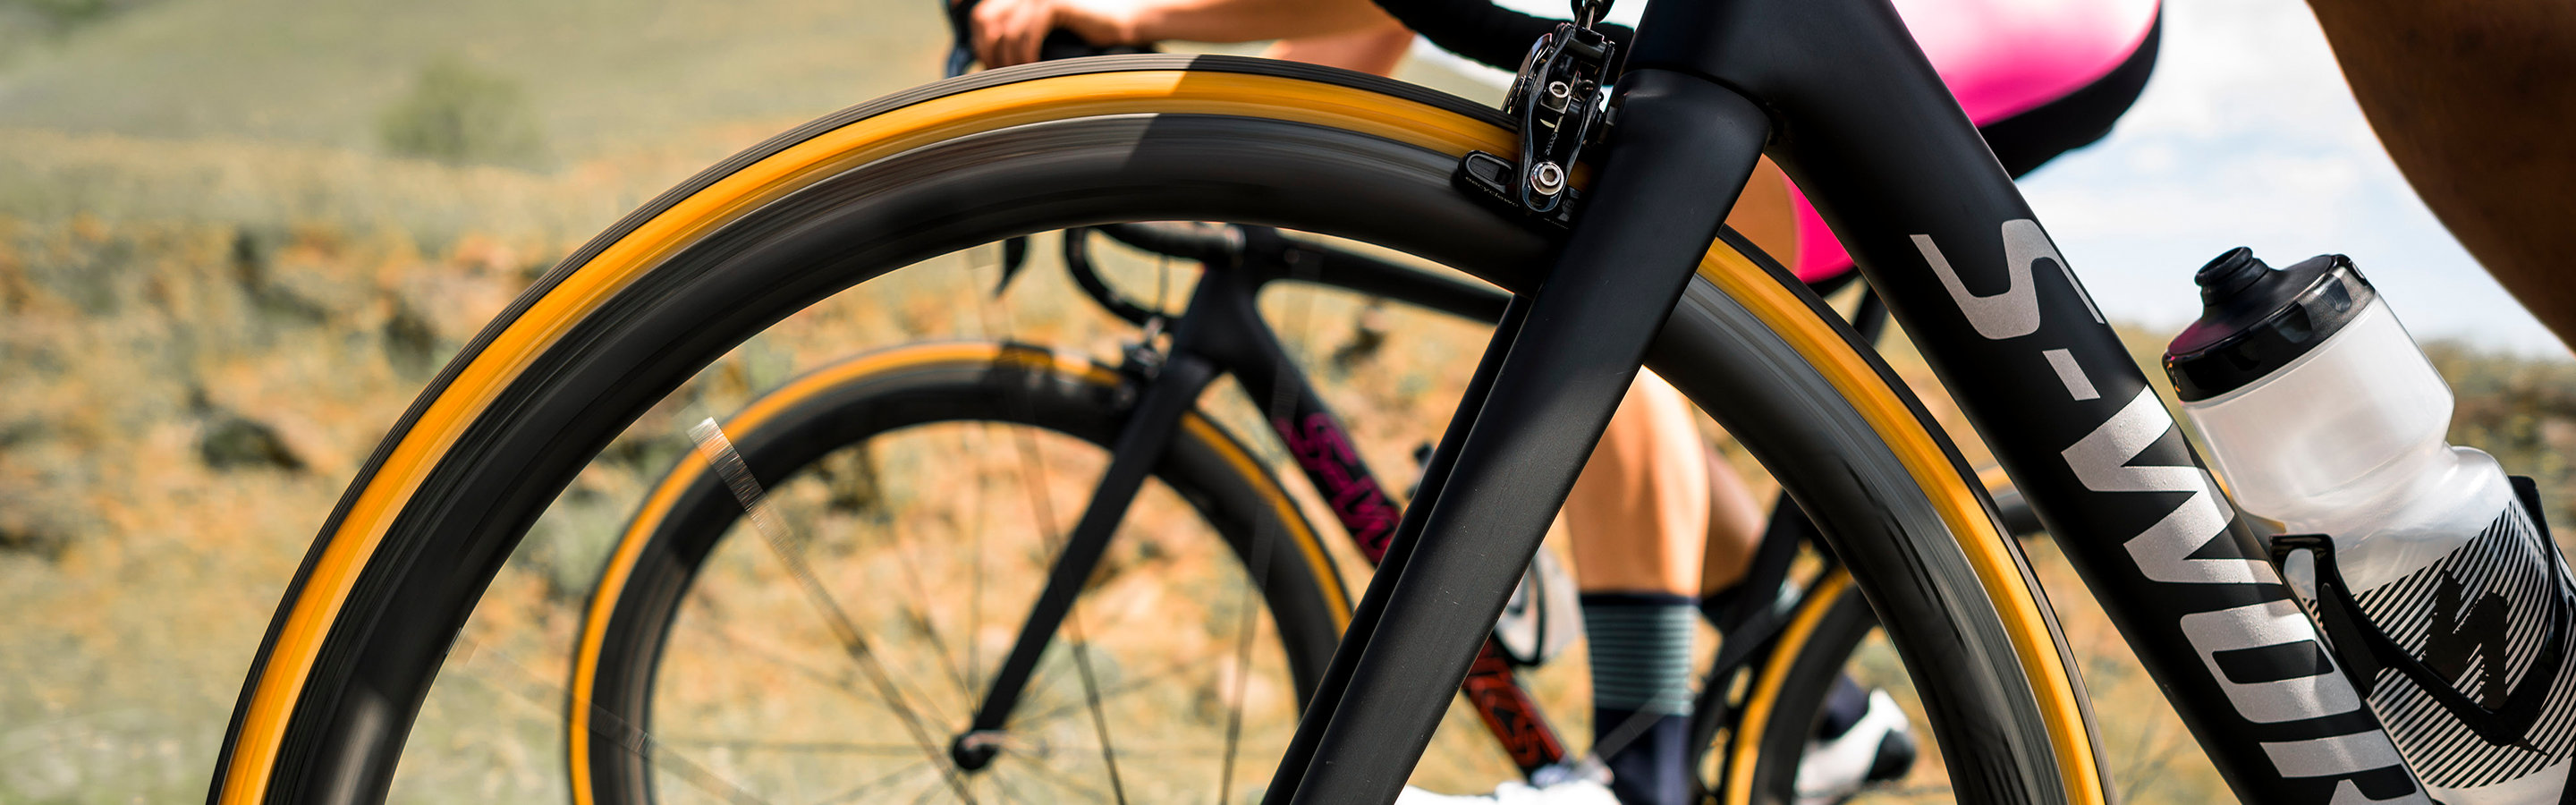 Bike Components | Specialized com